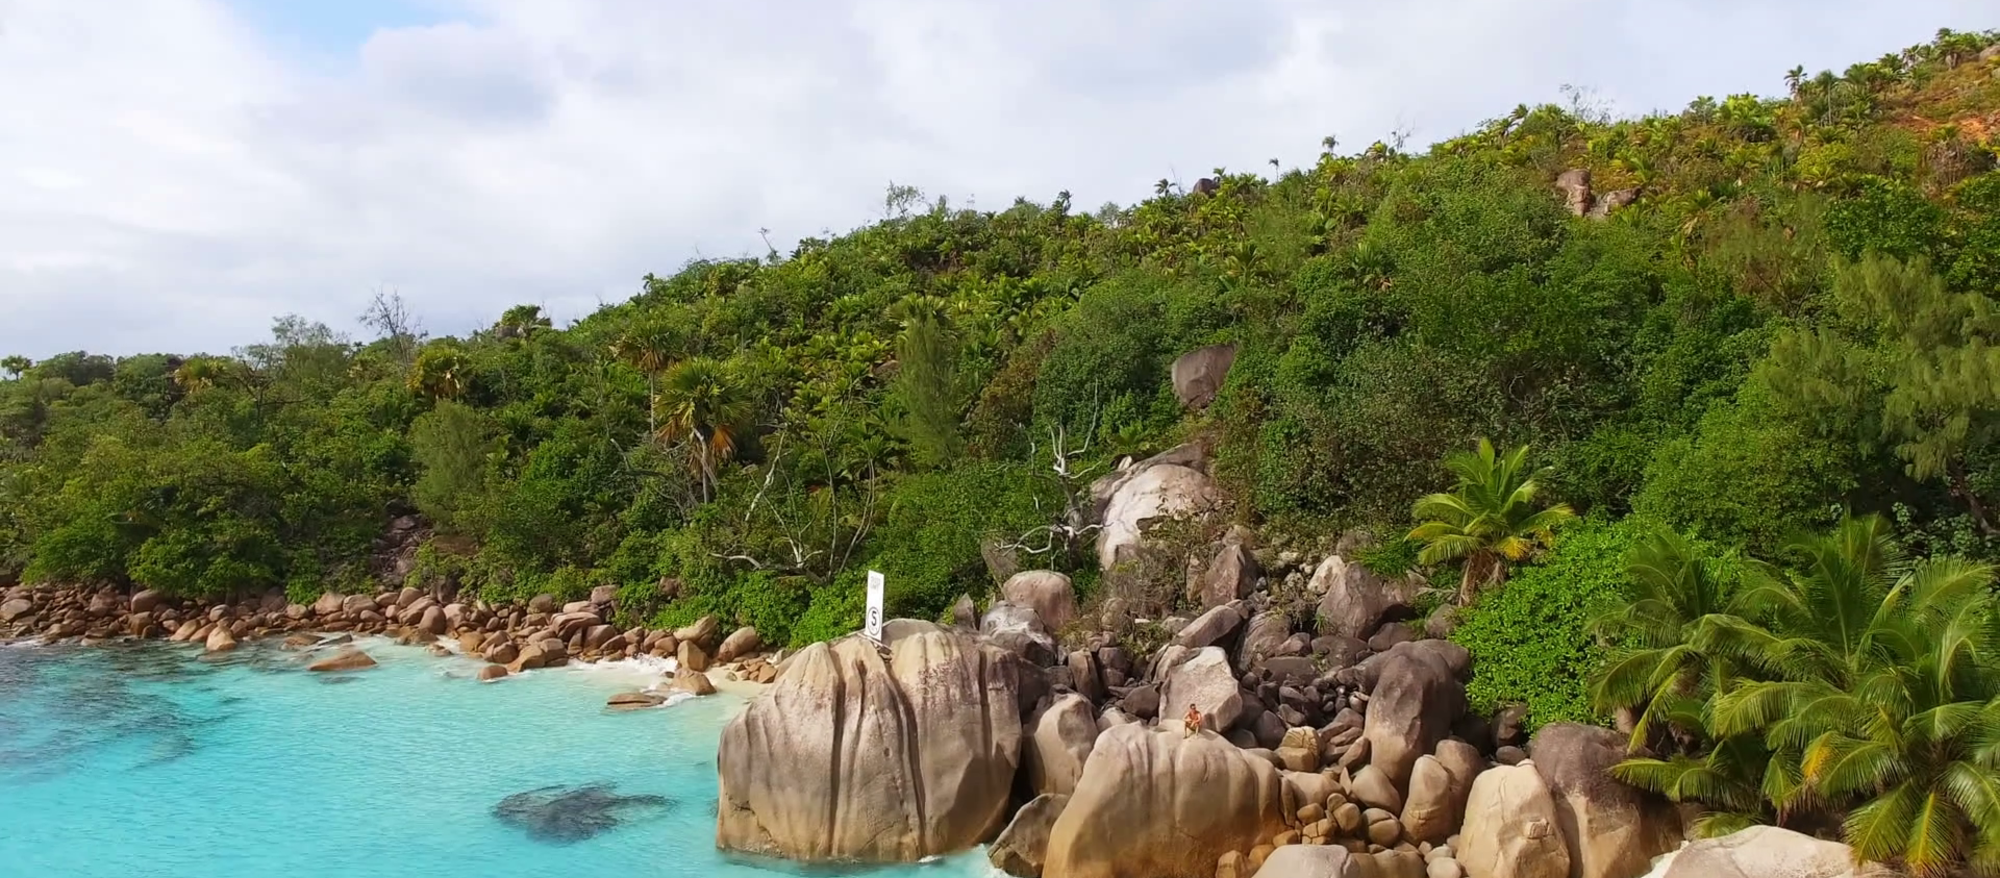 Combined tour Praslin Island (4n) - Mahe Island (the rest nights) (Seišelu salas)